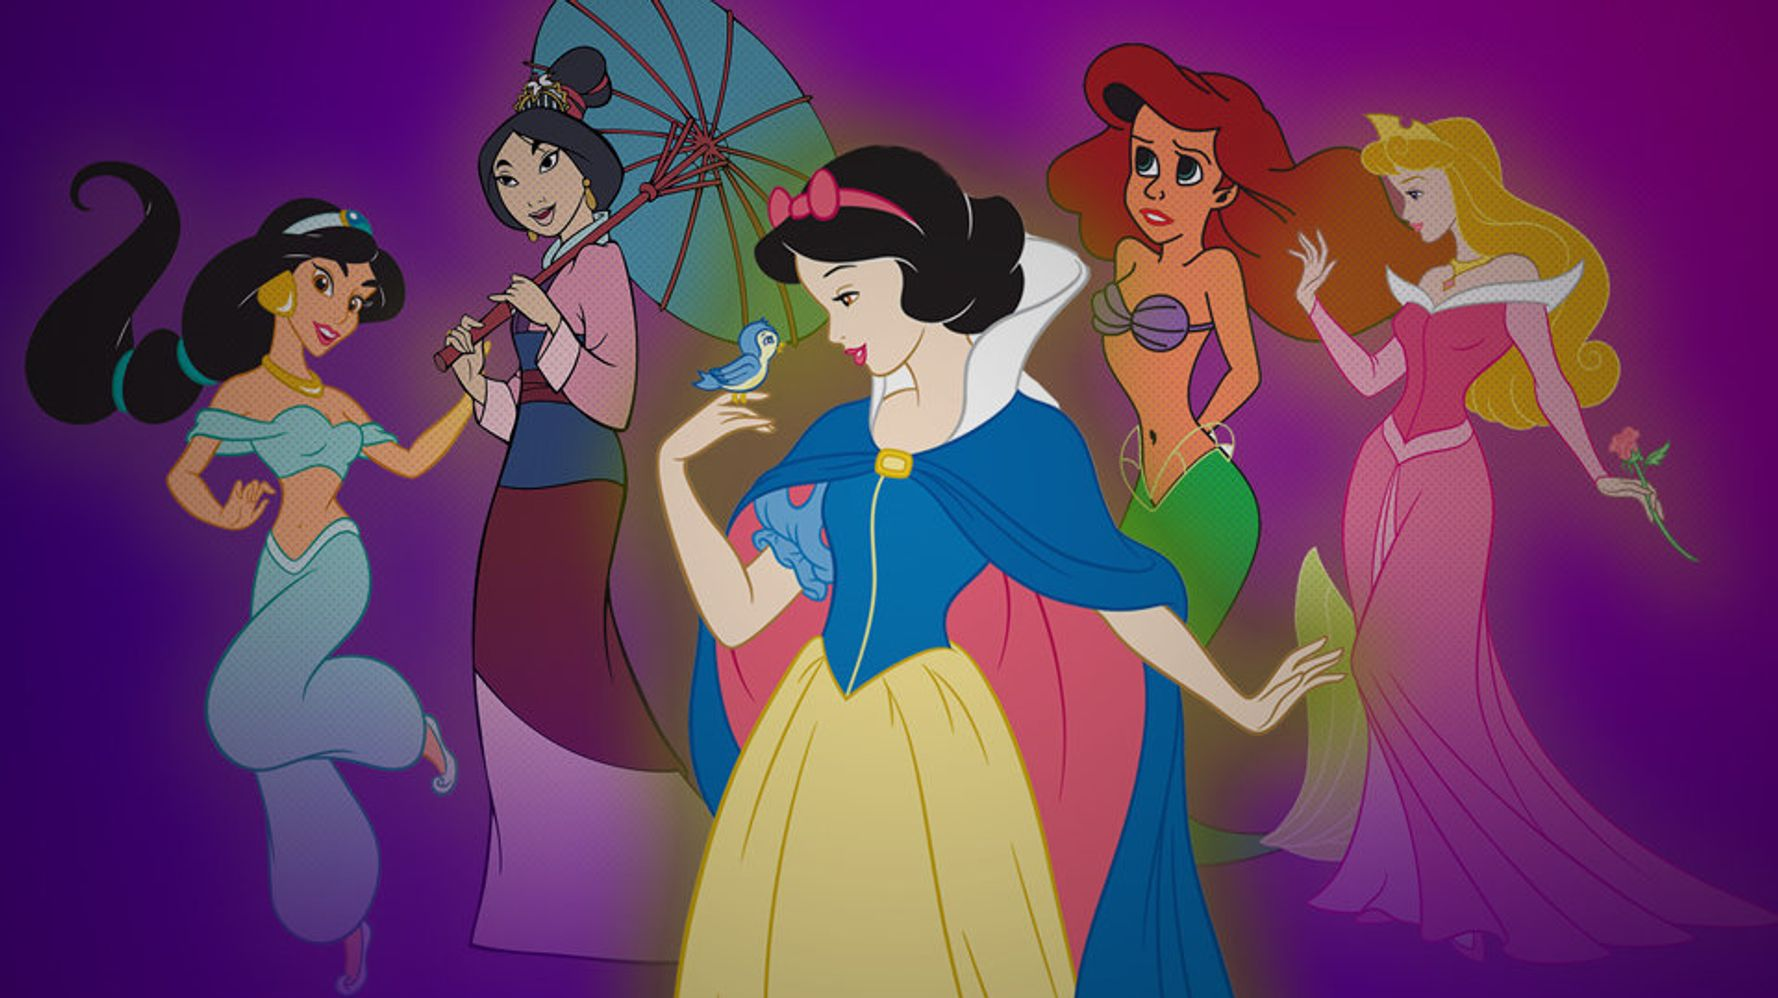 Can We Talk About How Young The Disney Princesses Are